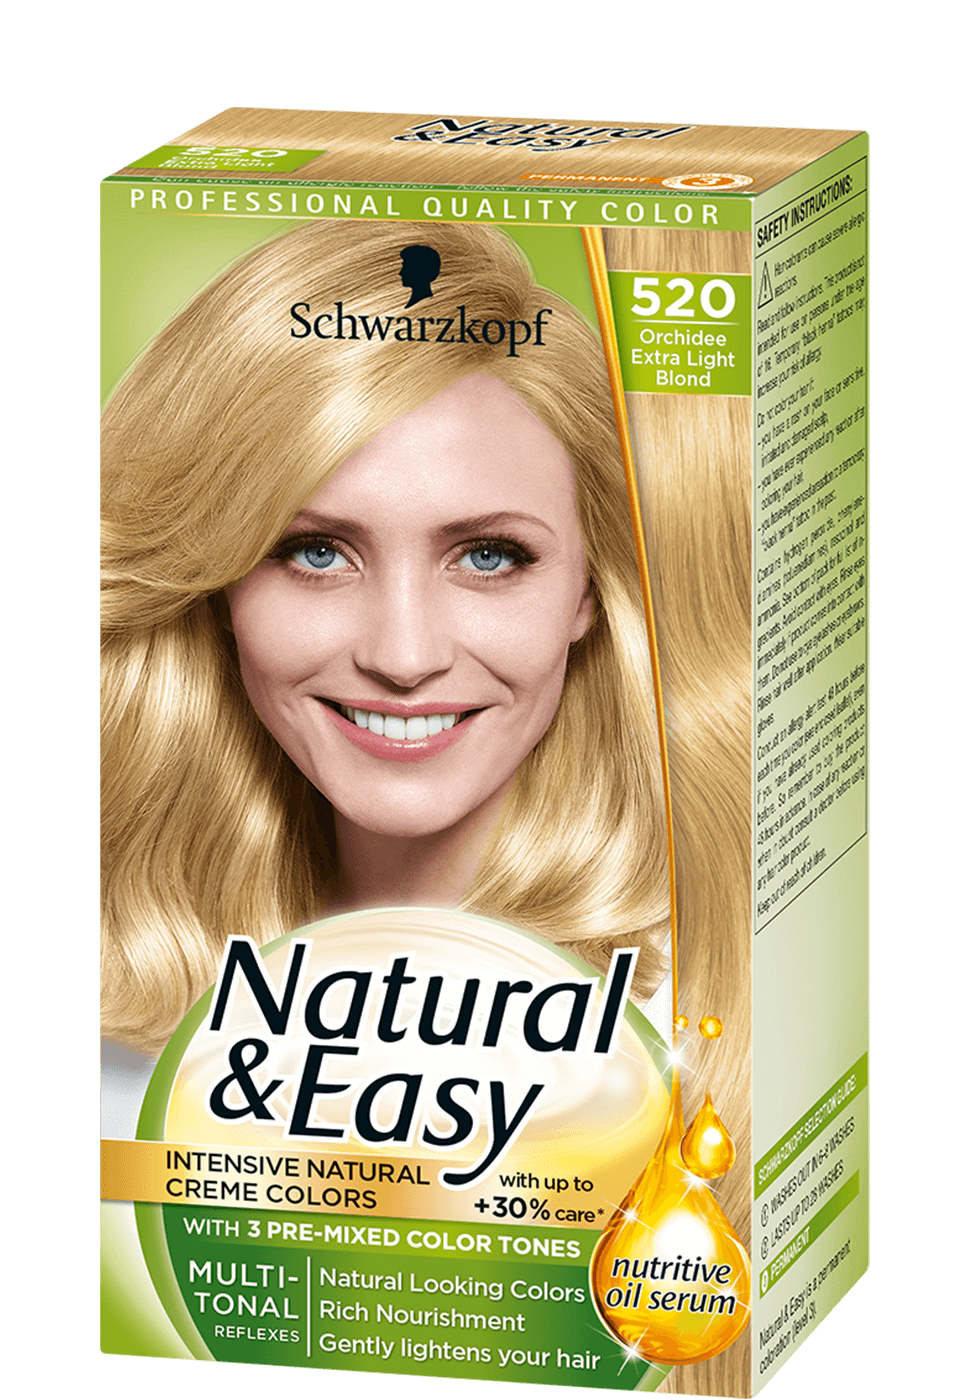 natural_easy_com_blonde_hair_520_orchidee_extra_light_blond_970x1400